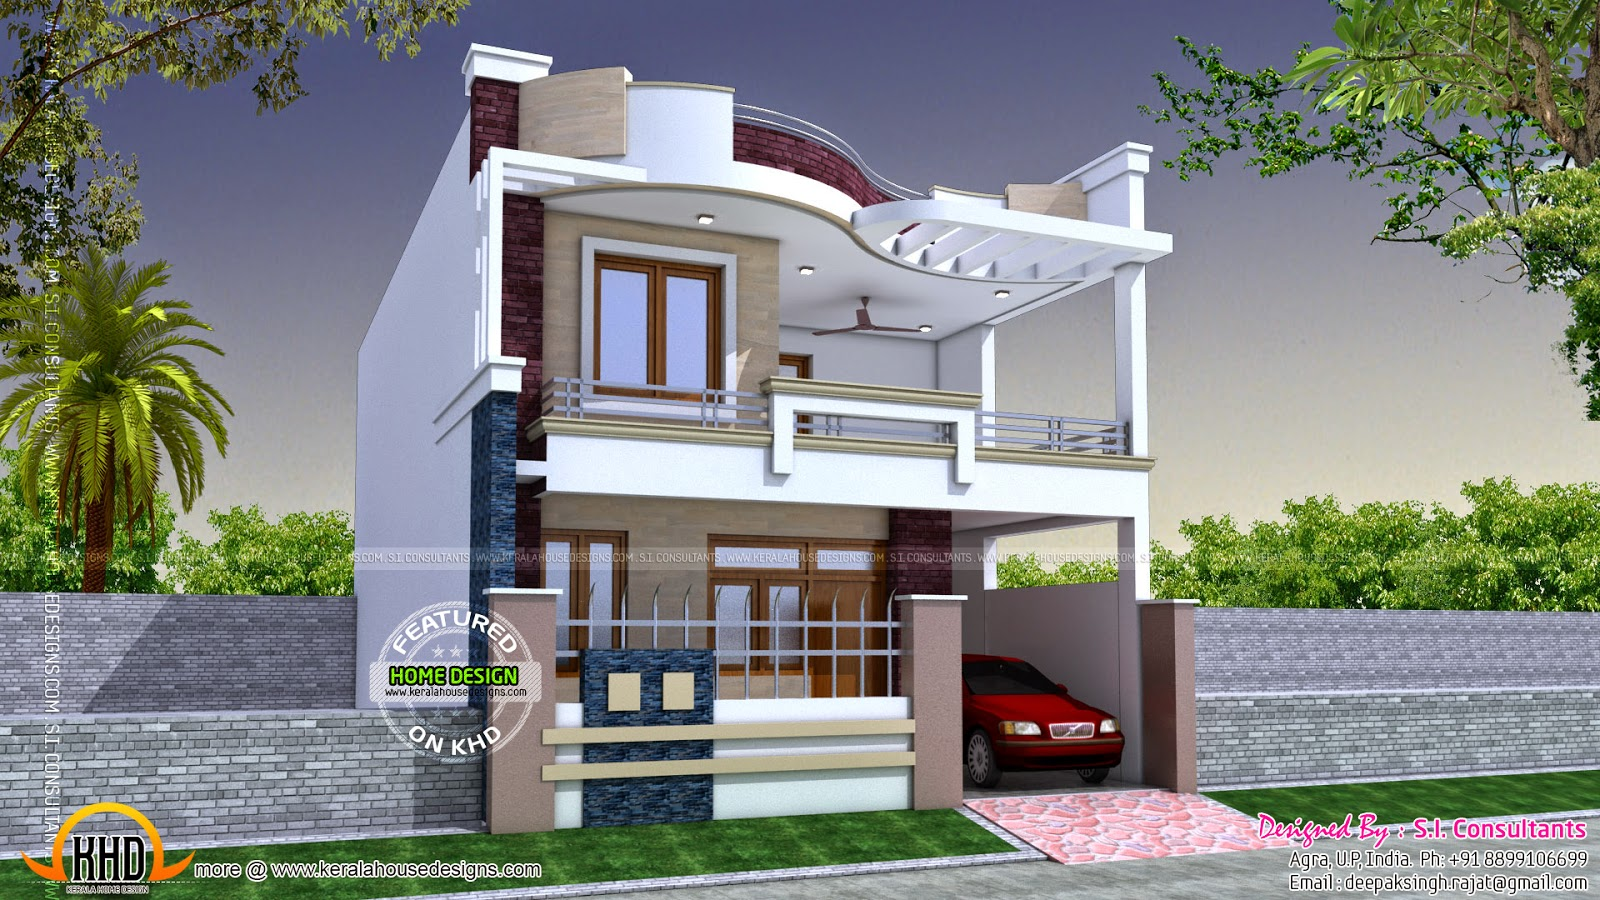 Modern indian home design kerala home design and floor plans for Home designs indian style